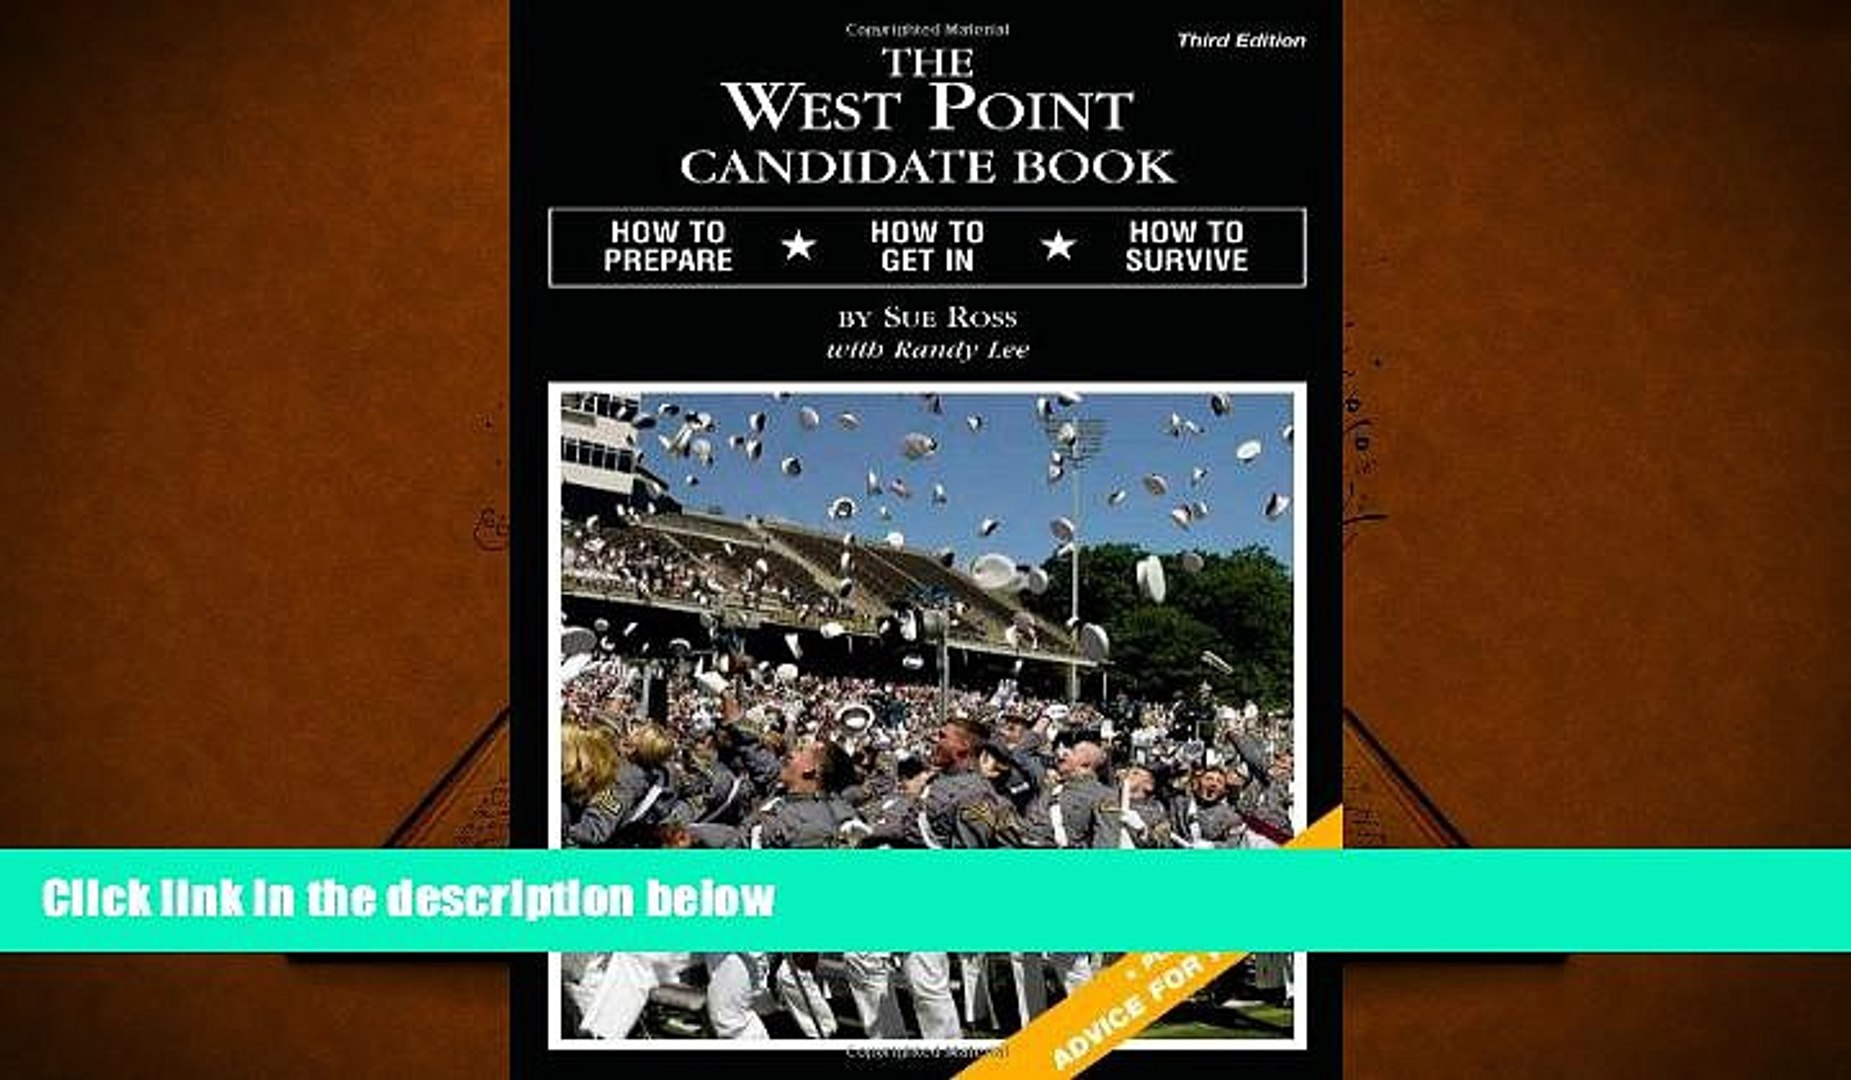 Download The West Point Candidate Book: How to Prepare, How to Get In, How to Survive Books Online